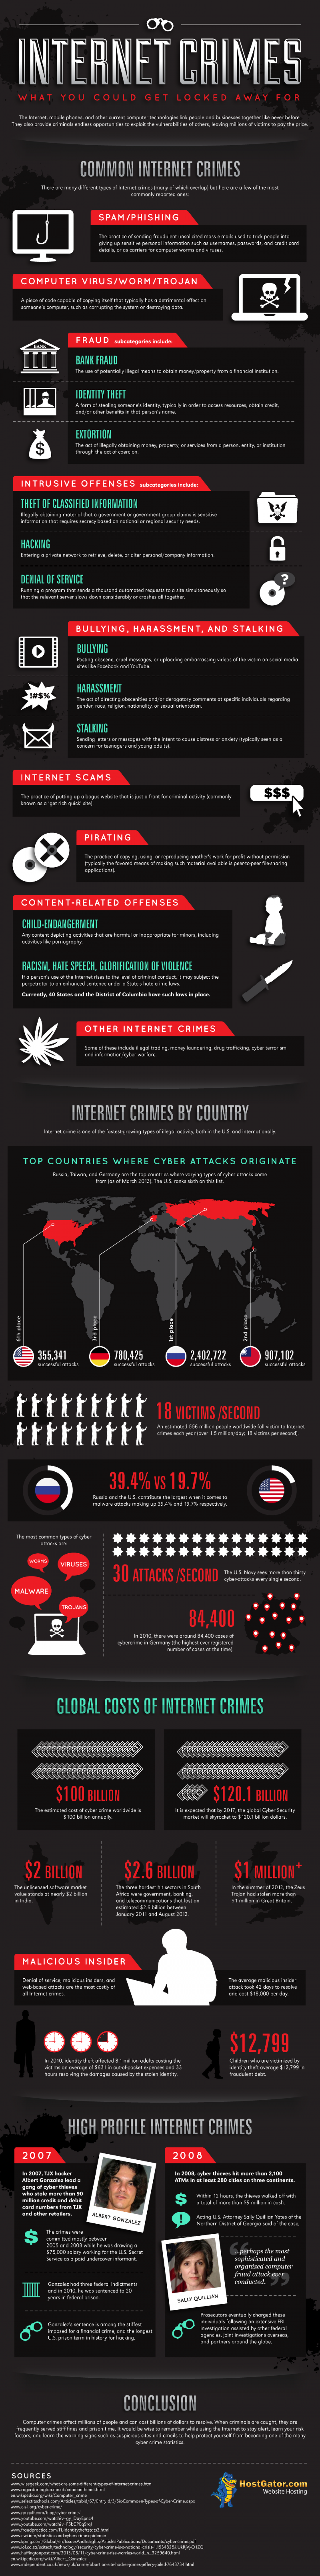 Internet Crimes Infographic